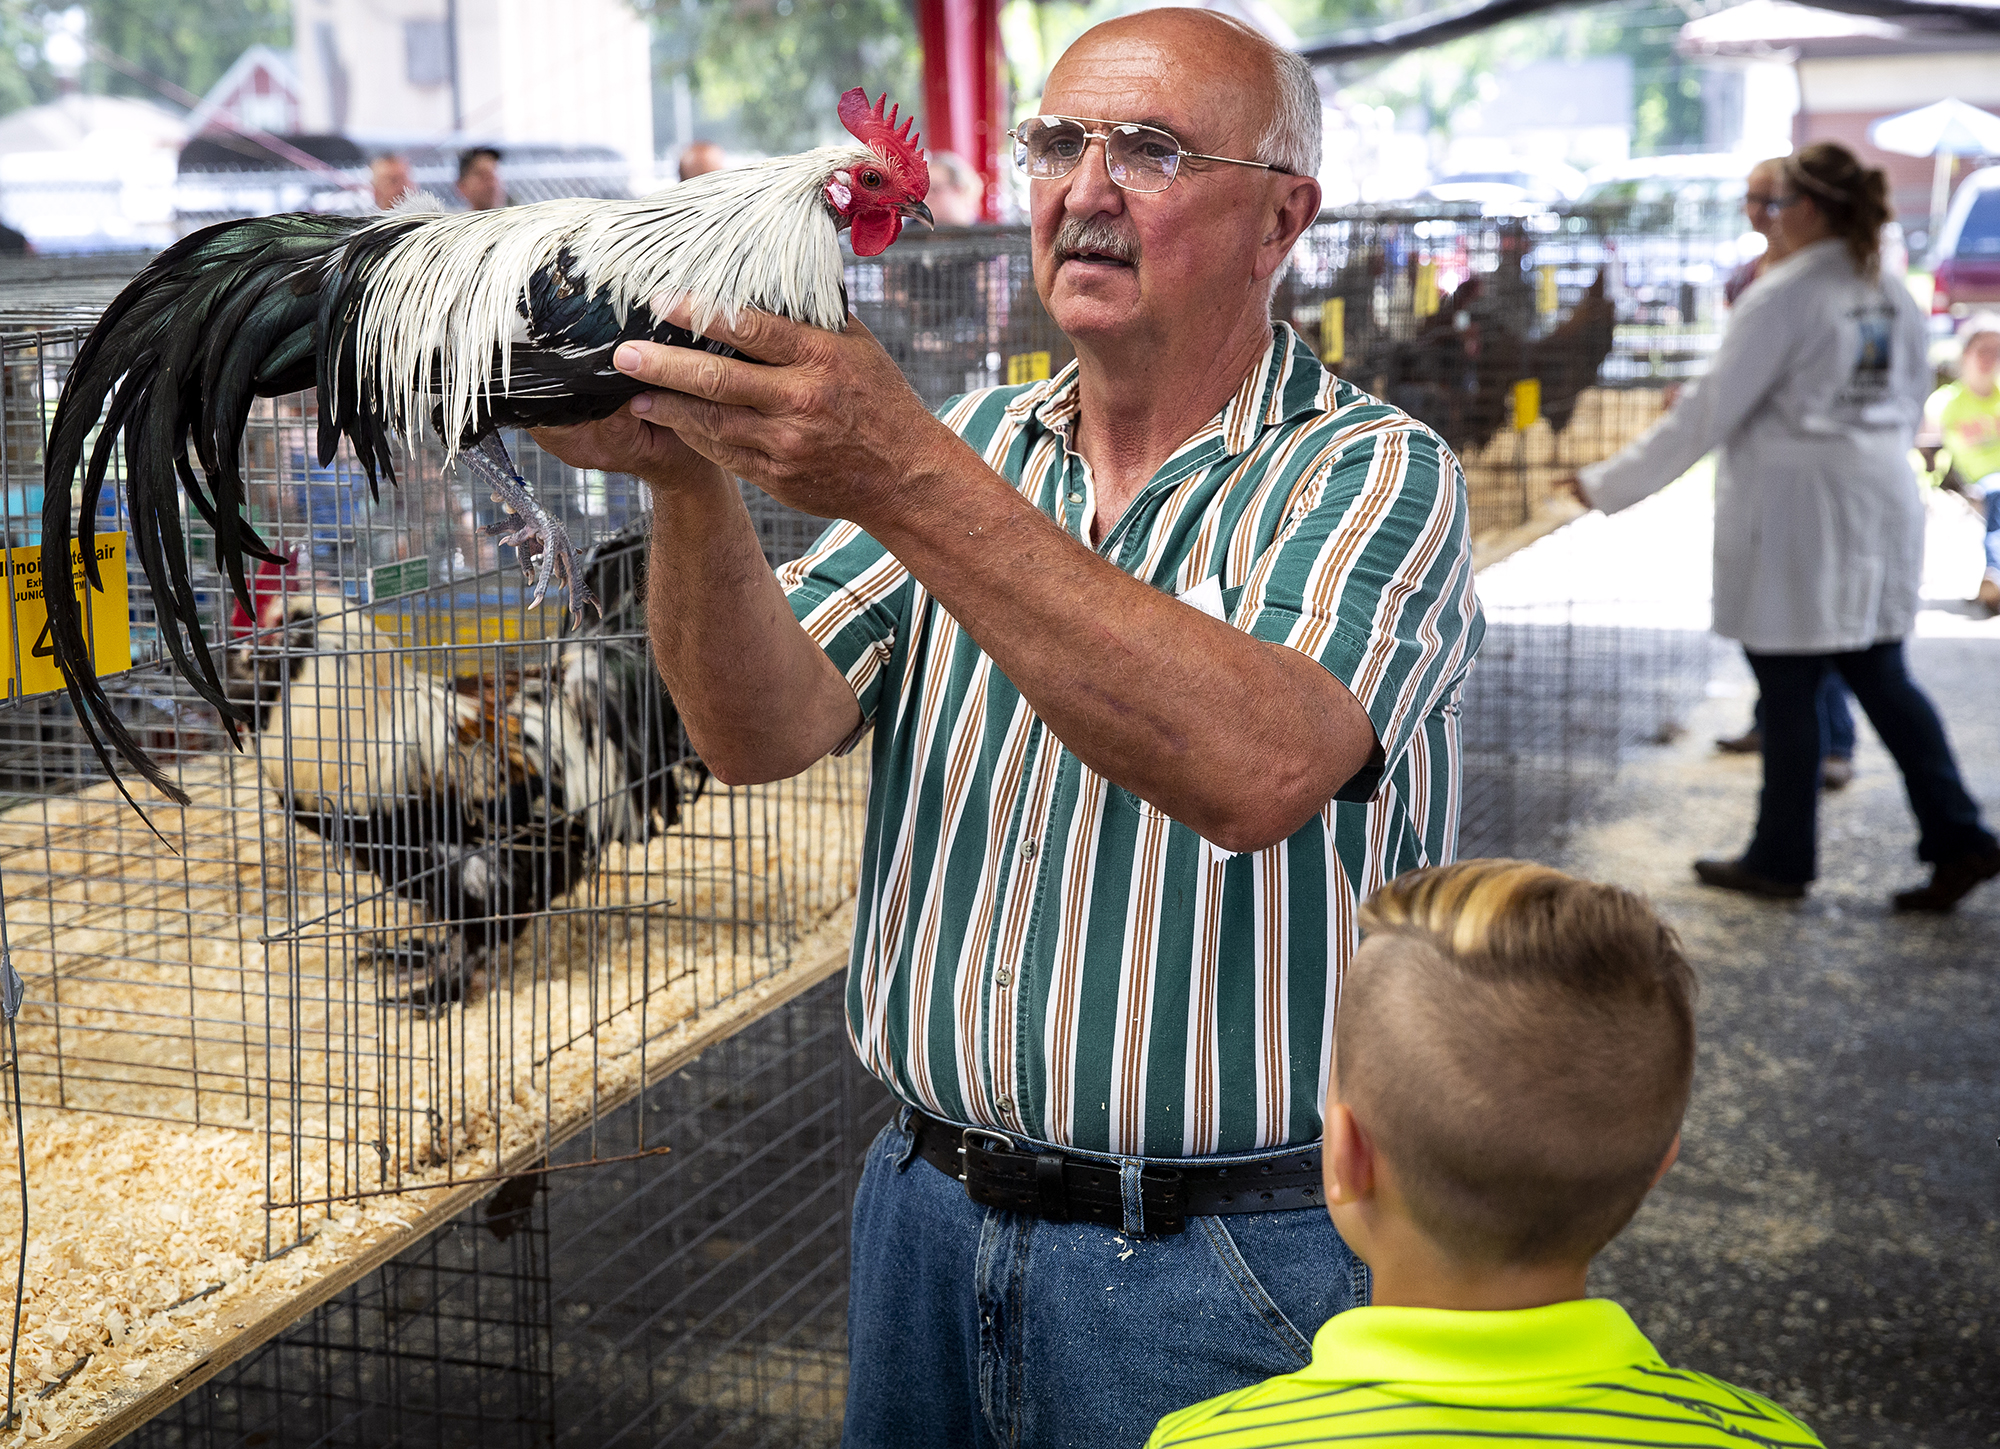 Poultry judge Tim Bowles studies the chicken, a Silver Phoenix, entered by Wyld Gilmore of Carlinville Wednesday, Aug. 8, 2018 on the Illinois State Fairgrounds in Springfield, Ill. Judging was held for all classes of poultry including chickens, turkeys and waterfowl, even though the Illinois State Fair opens officially on Thursday. [Rich Saal/The State Journal-Register]